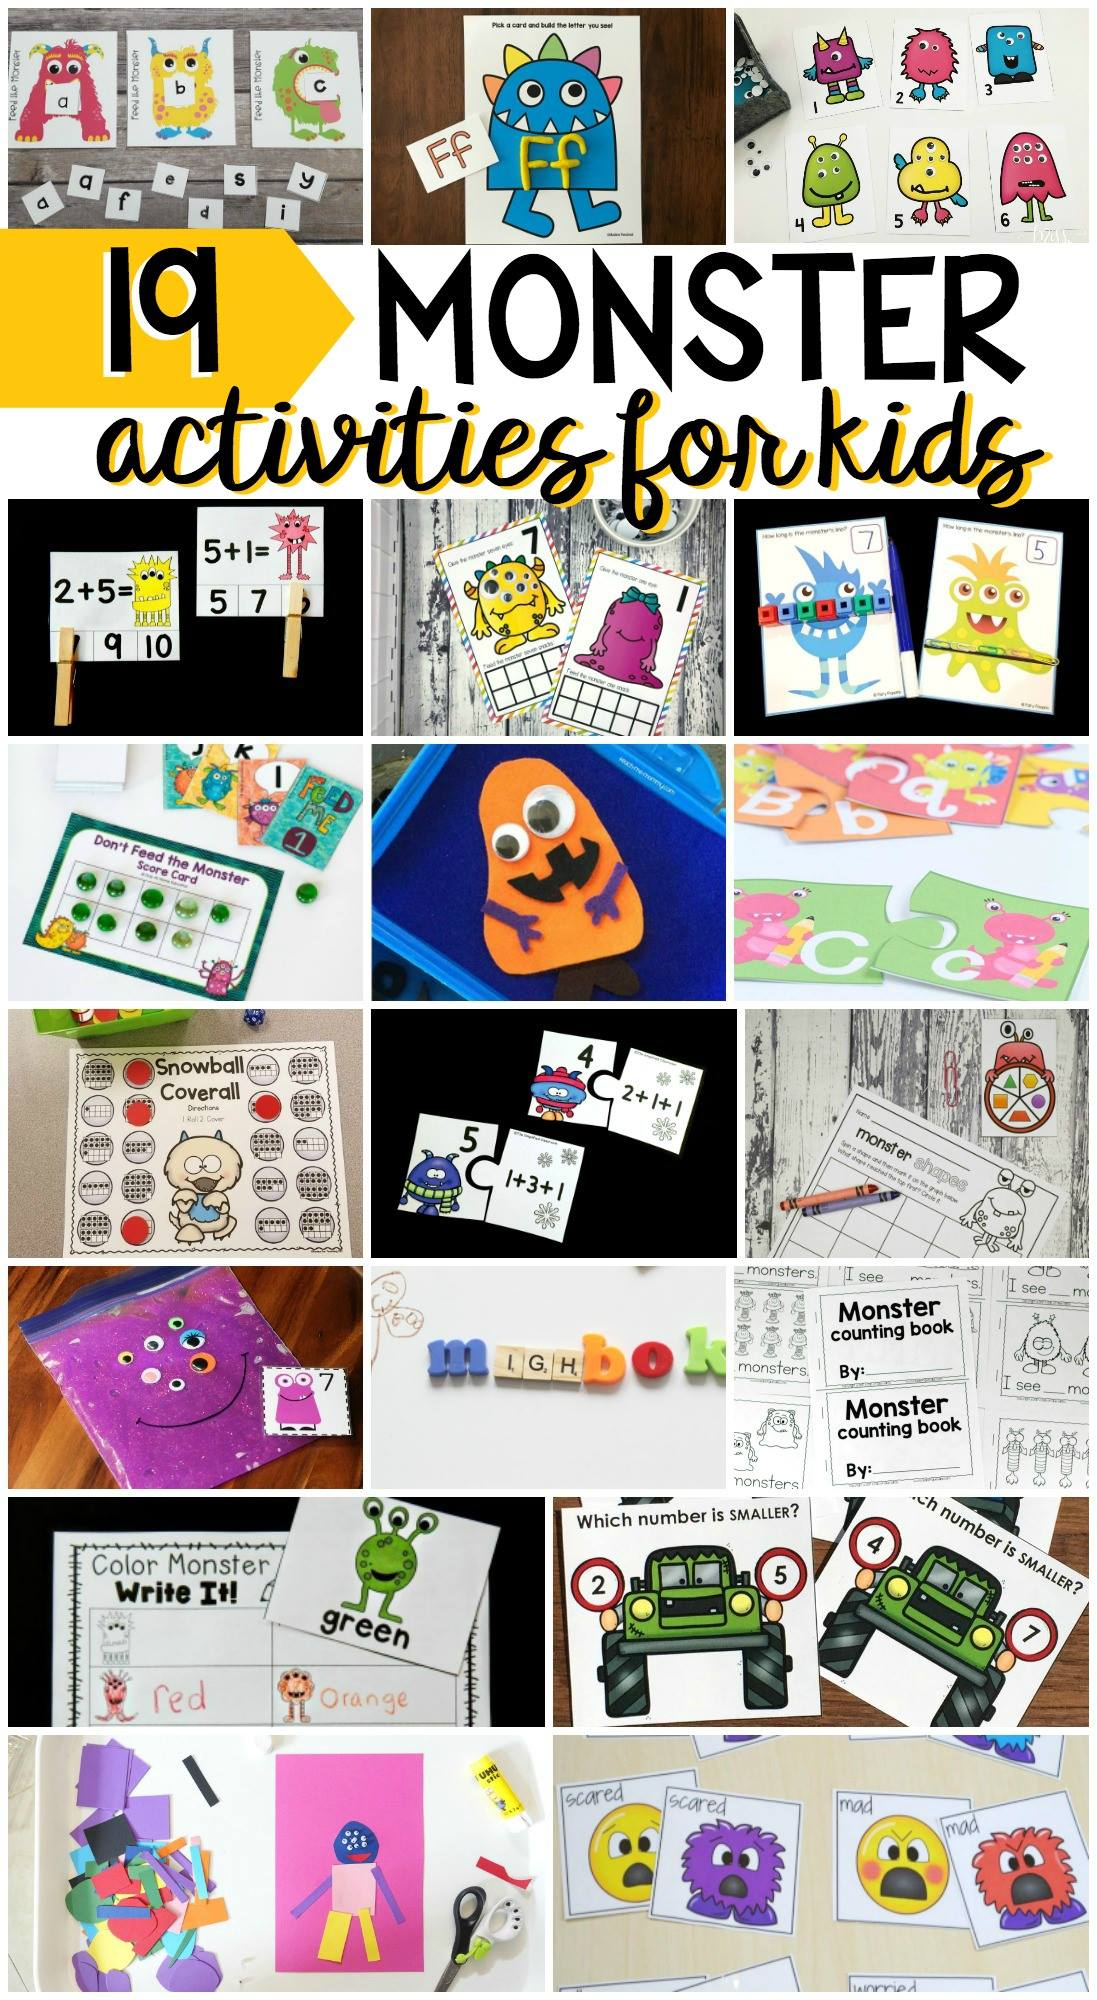 19 Monster Activities For Kids